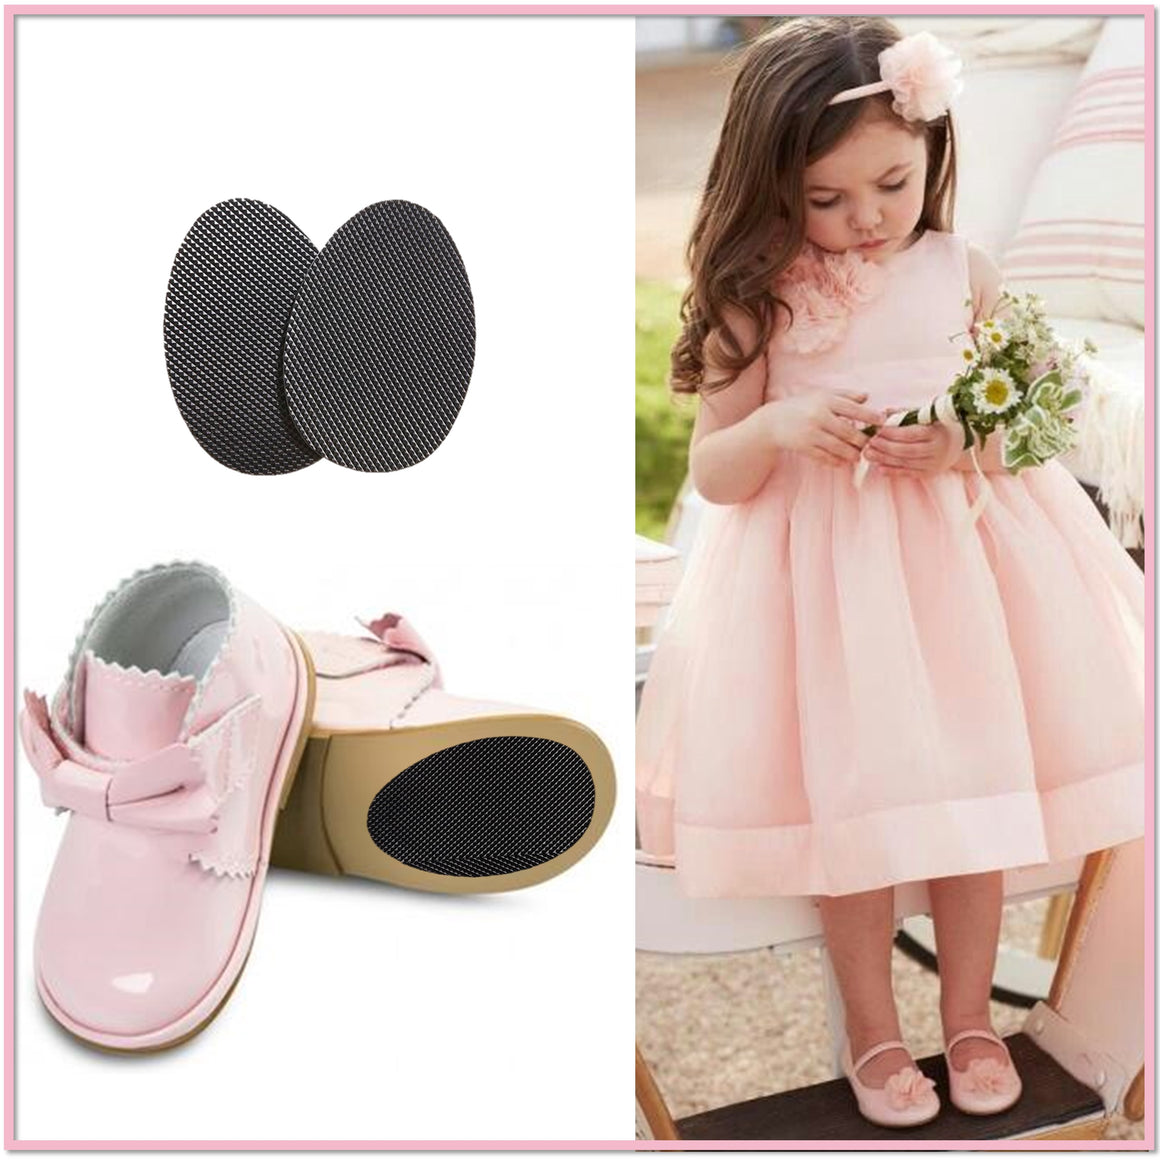 Sole Savers Juniors (3 Pair)- Sole Protectors for Kids, Juniors, and Small Adult Shoes - Boottique